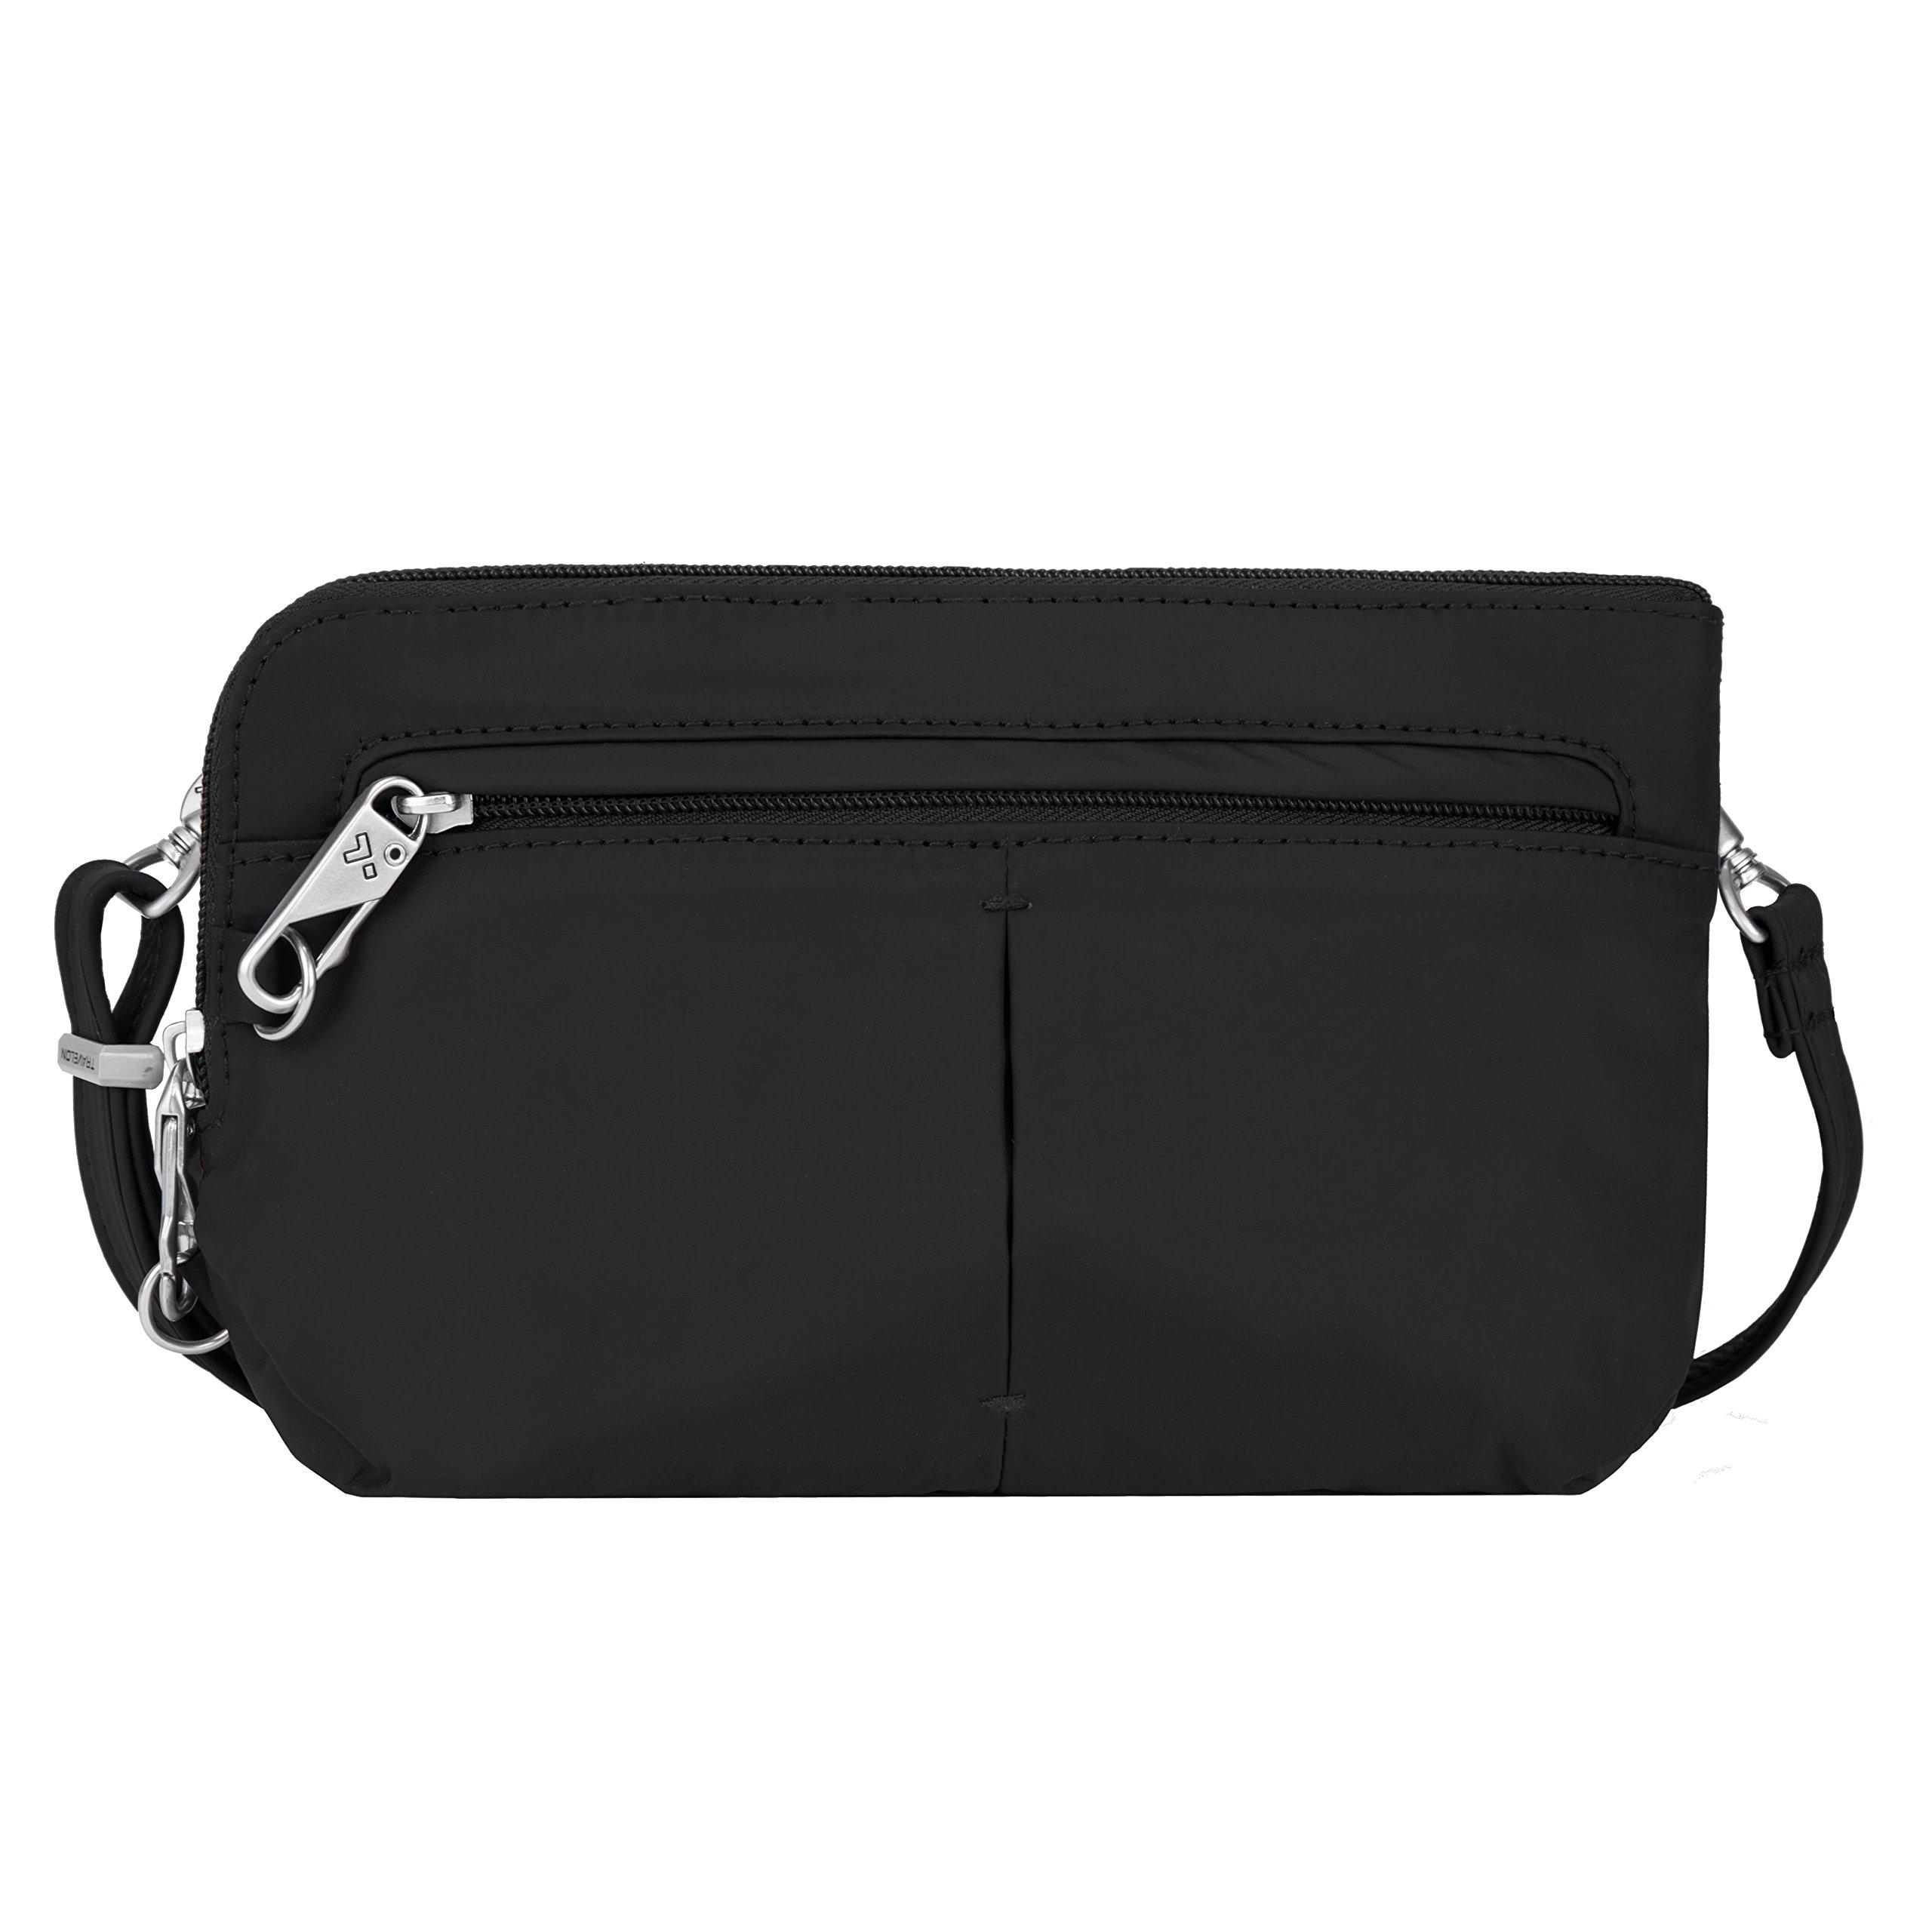 Travelon Anti-Theft Classic Light Convertible Crossbody and Waistpack, Black, One Size